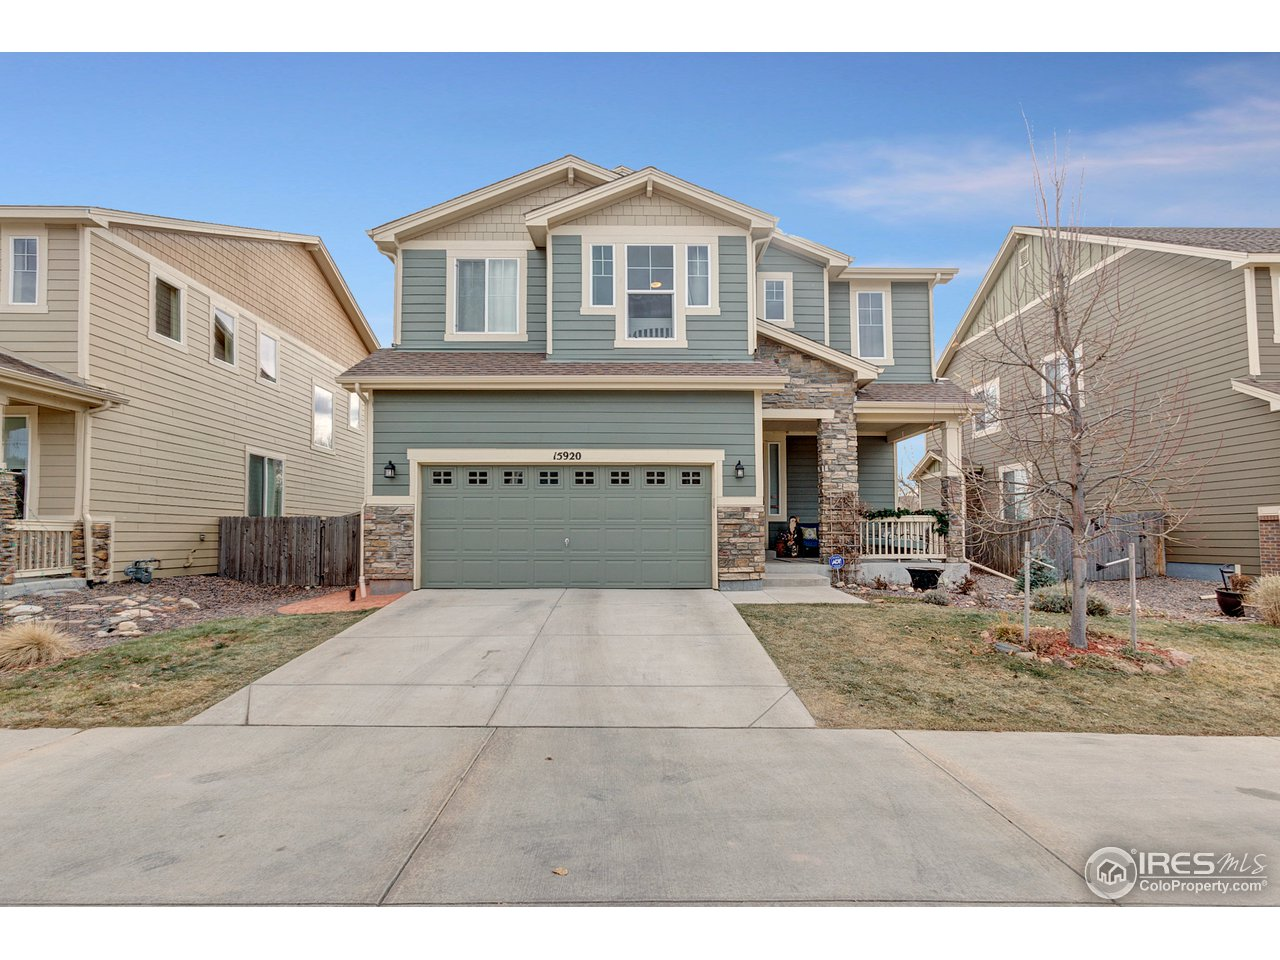 15920 W 62nd Dr, Arvada CO 80403